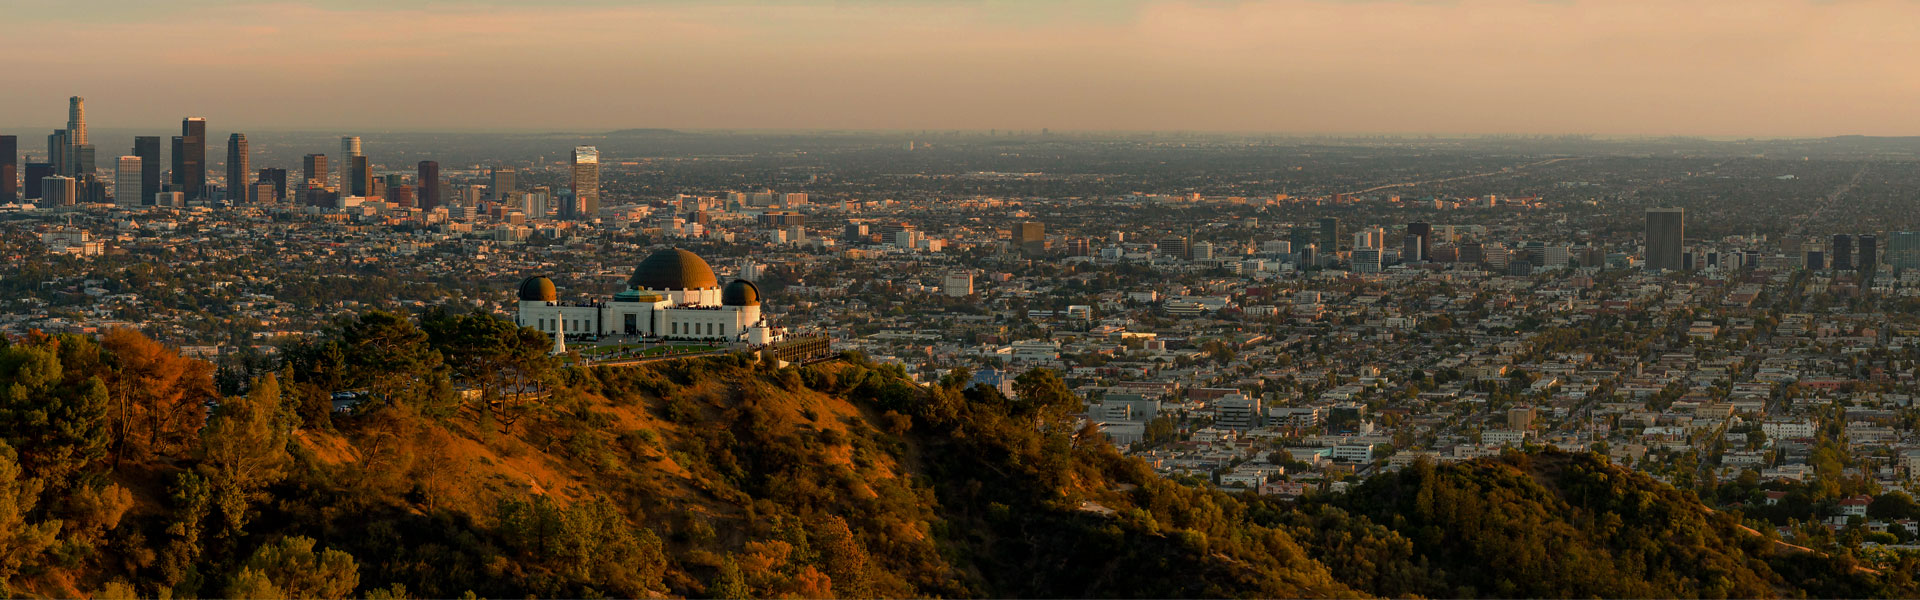 Panoramic view of Griffith Observatory with Downtown Los Angeles in the background